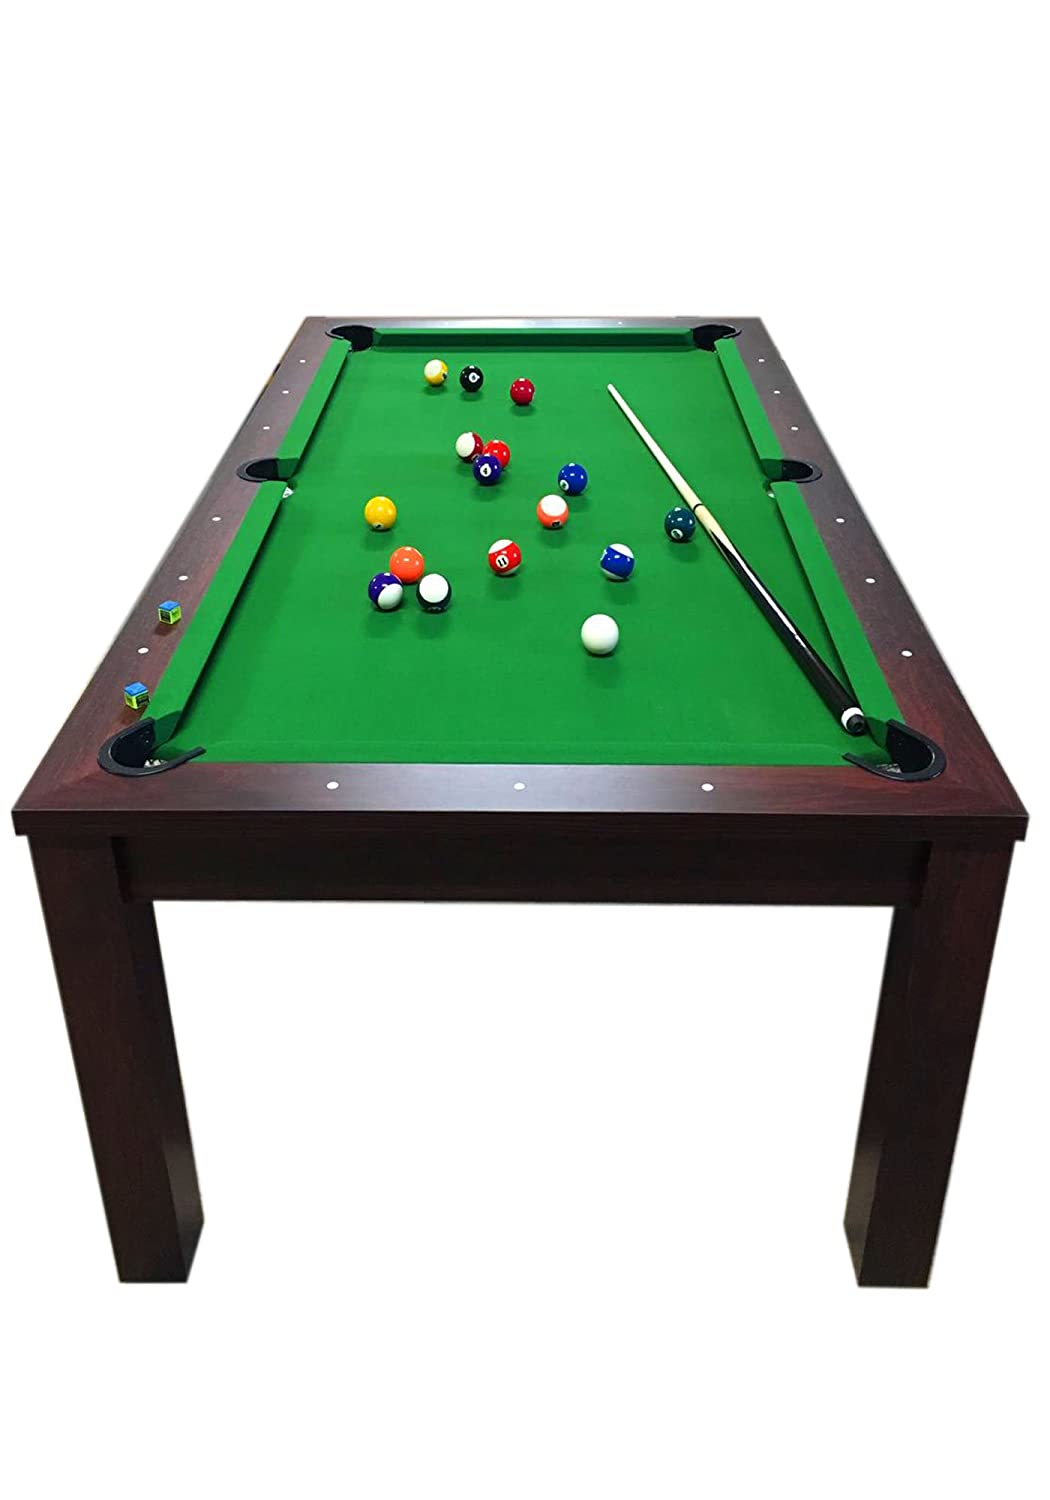 Amazon.com : POOL TABLE 7FT Model MISSISIPI Snooker Full Accessories ...